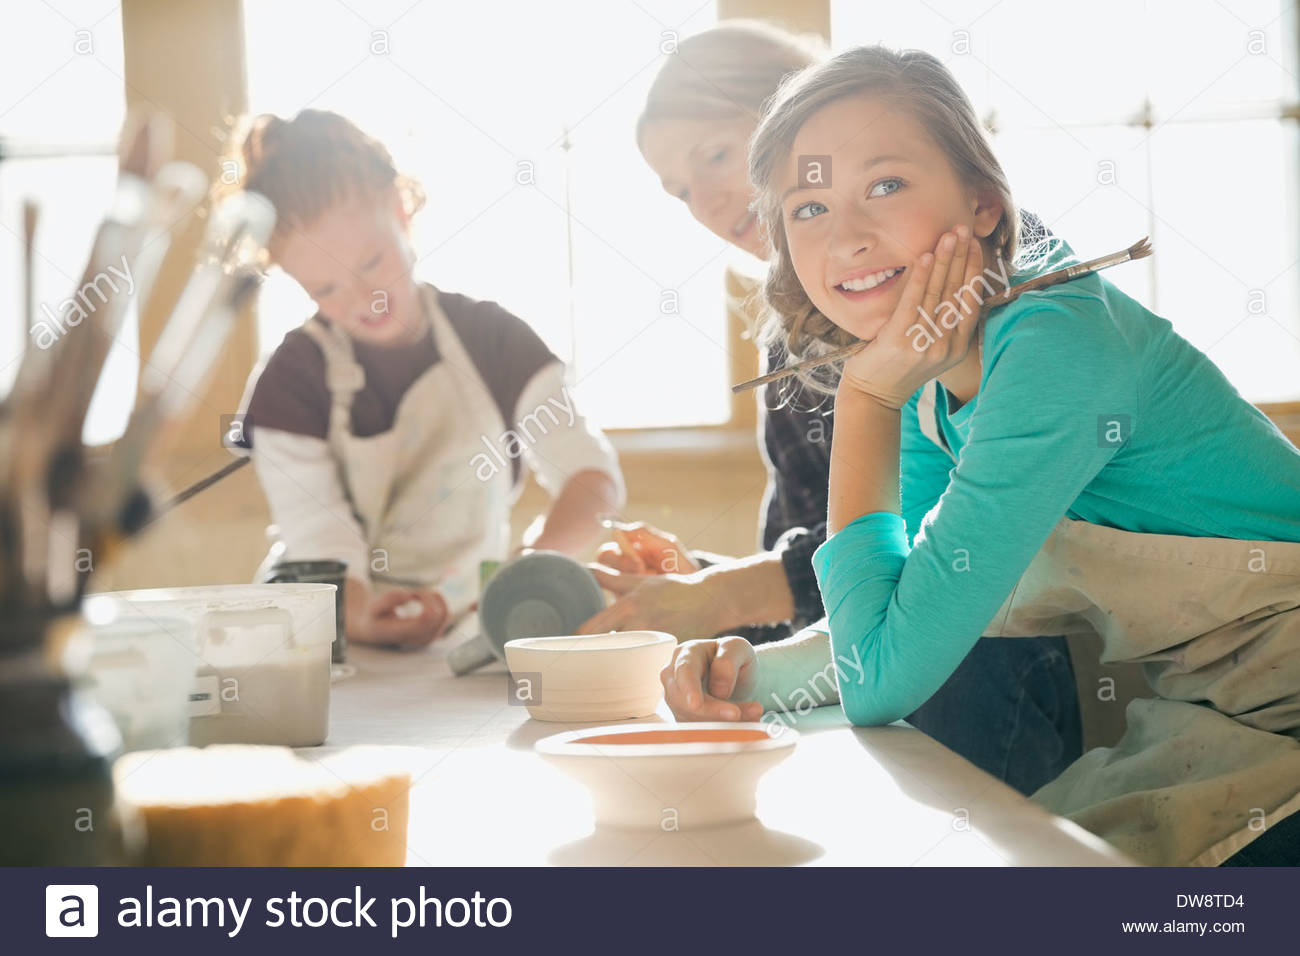 Portrait of girl sitting at table in art class - Stock Image